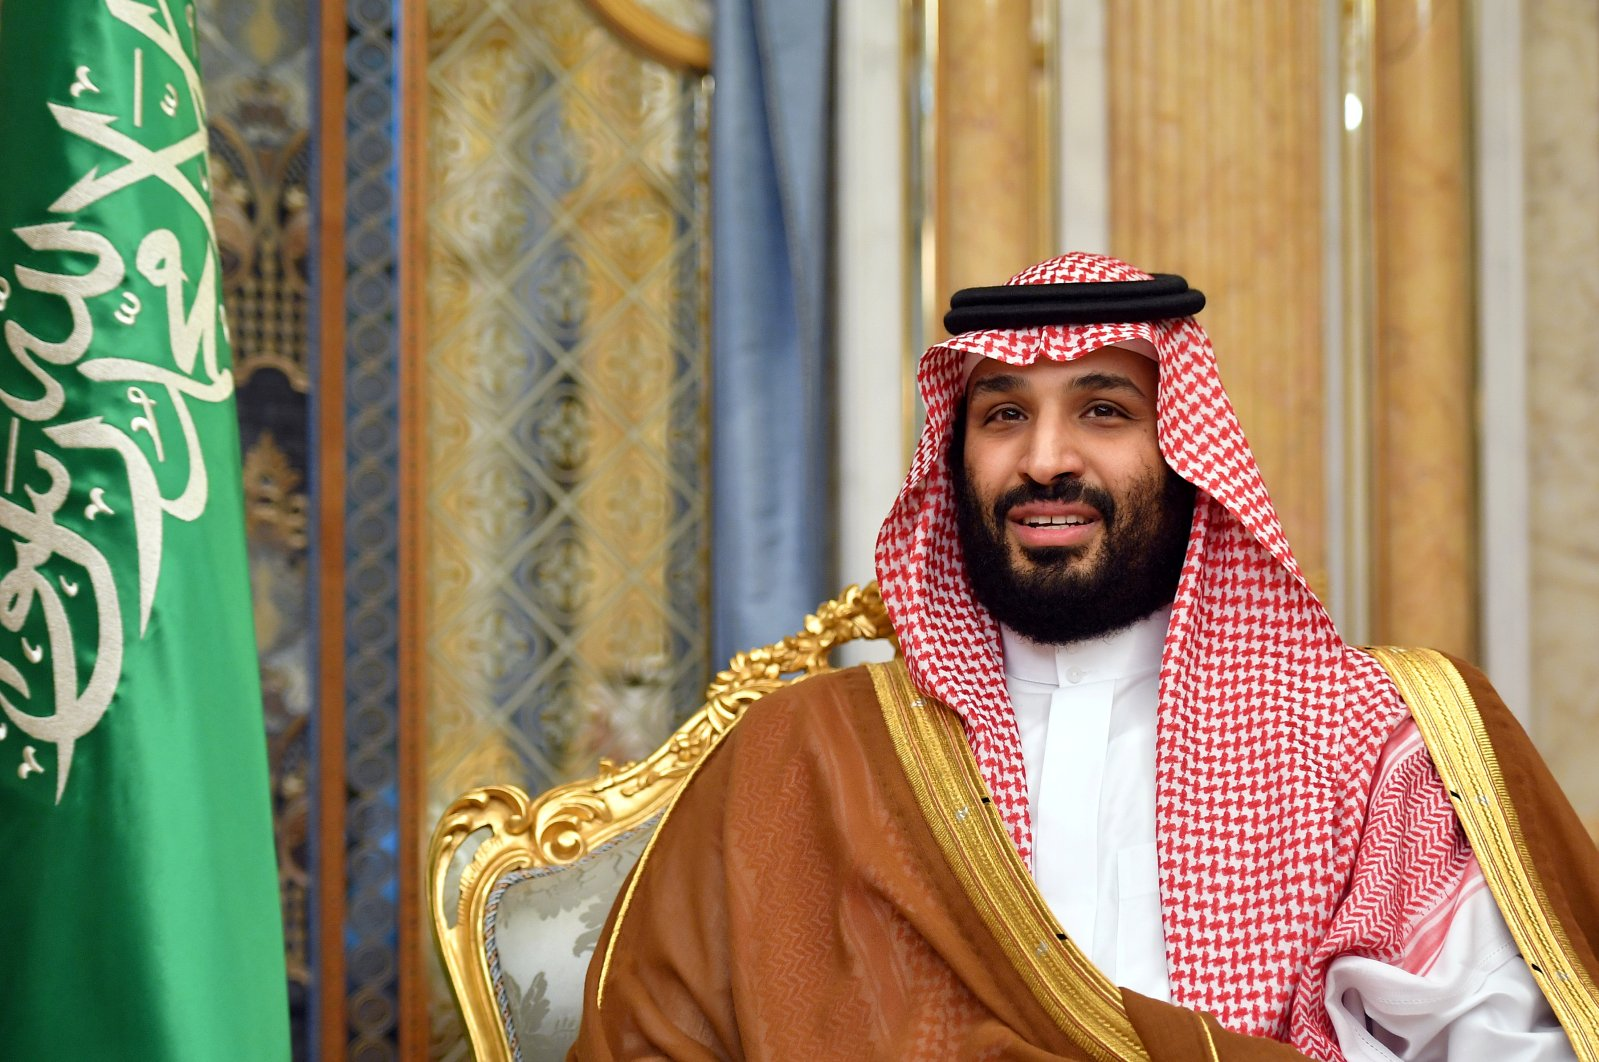 Saudi Arabia's Crown Prince Mohammed bin Salman attends a meeting with U.S. Secretary of State Mike Pompeo, Jeddah, Sept. 18, 2019. (REUTERS Photo)